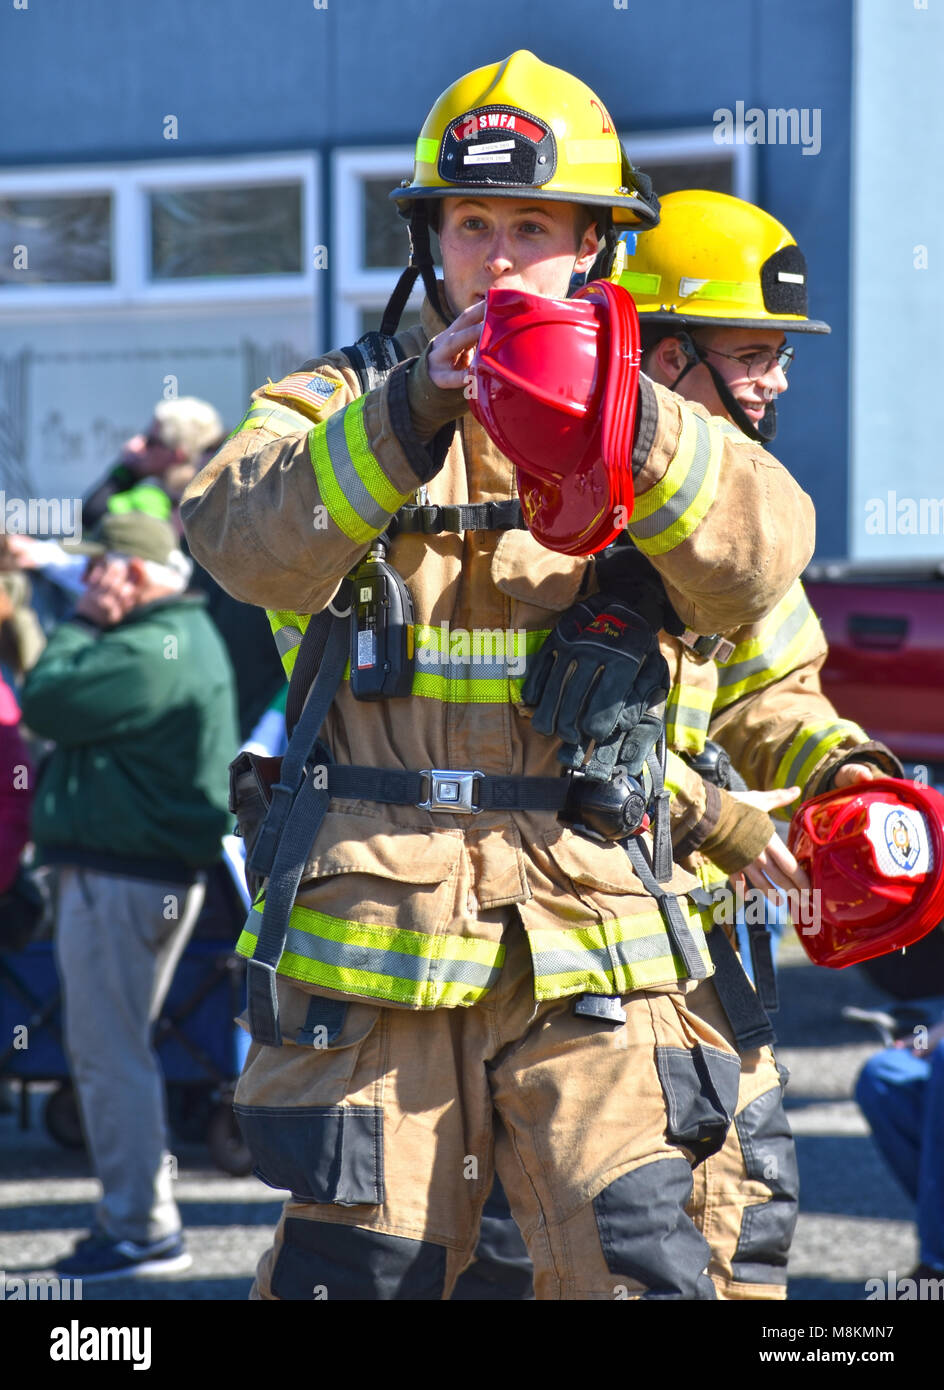 Firemen giving out hats at the Bellingham, Washington, St. Patrick's Day Parade on March 17, 2018. - Stock Image